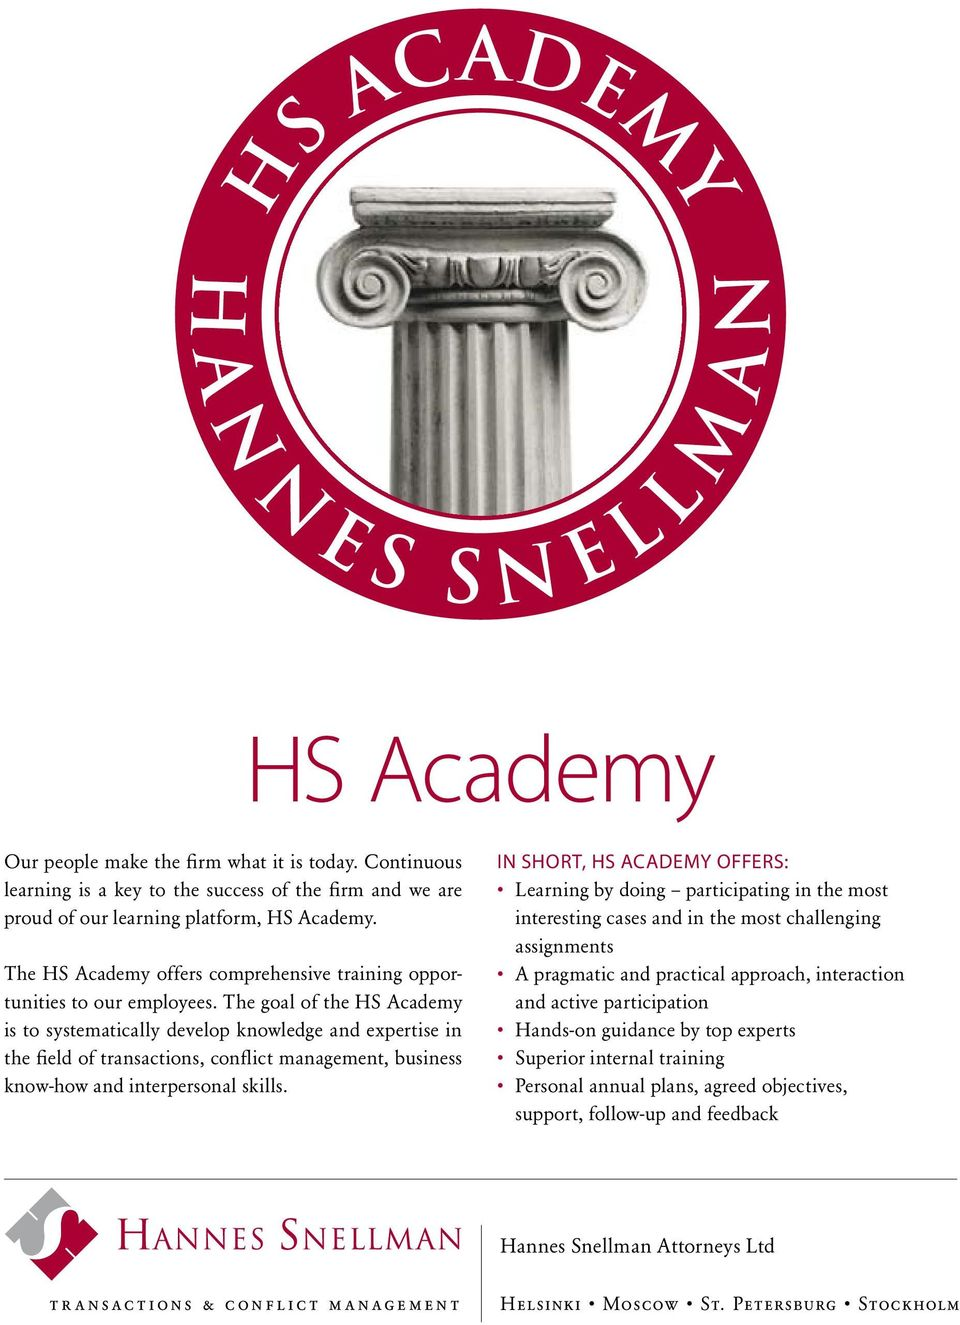 The goal of the HS Academy is to systematically develop knowledge and expertise in the field of transactions, conflict management, business know-how and interpersonal skills.